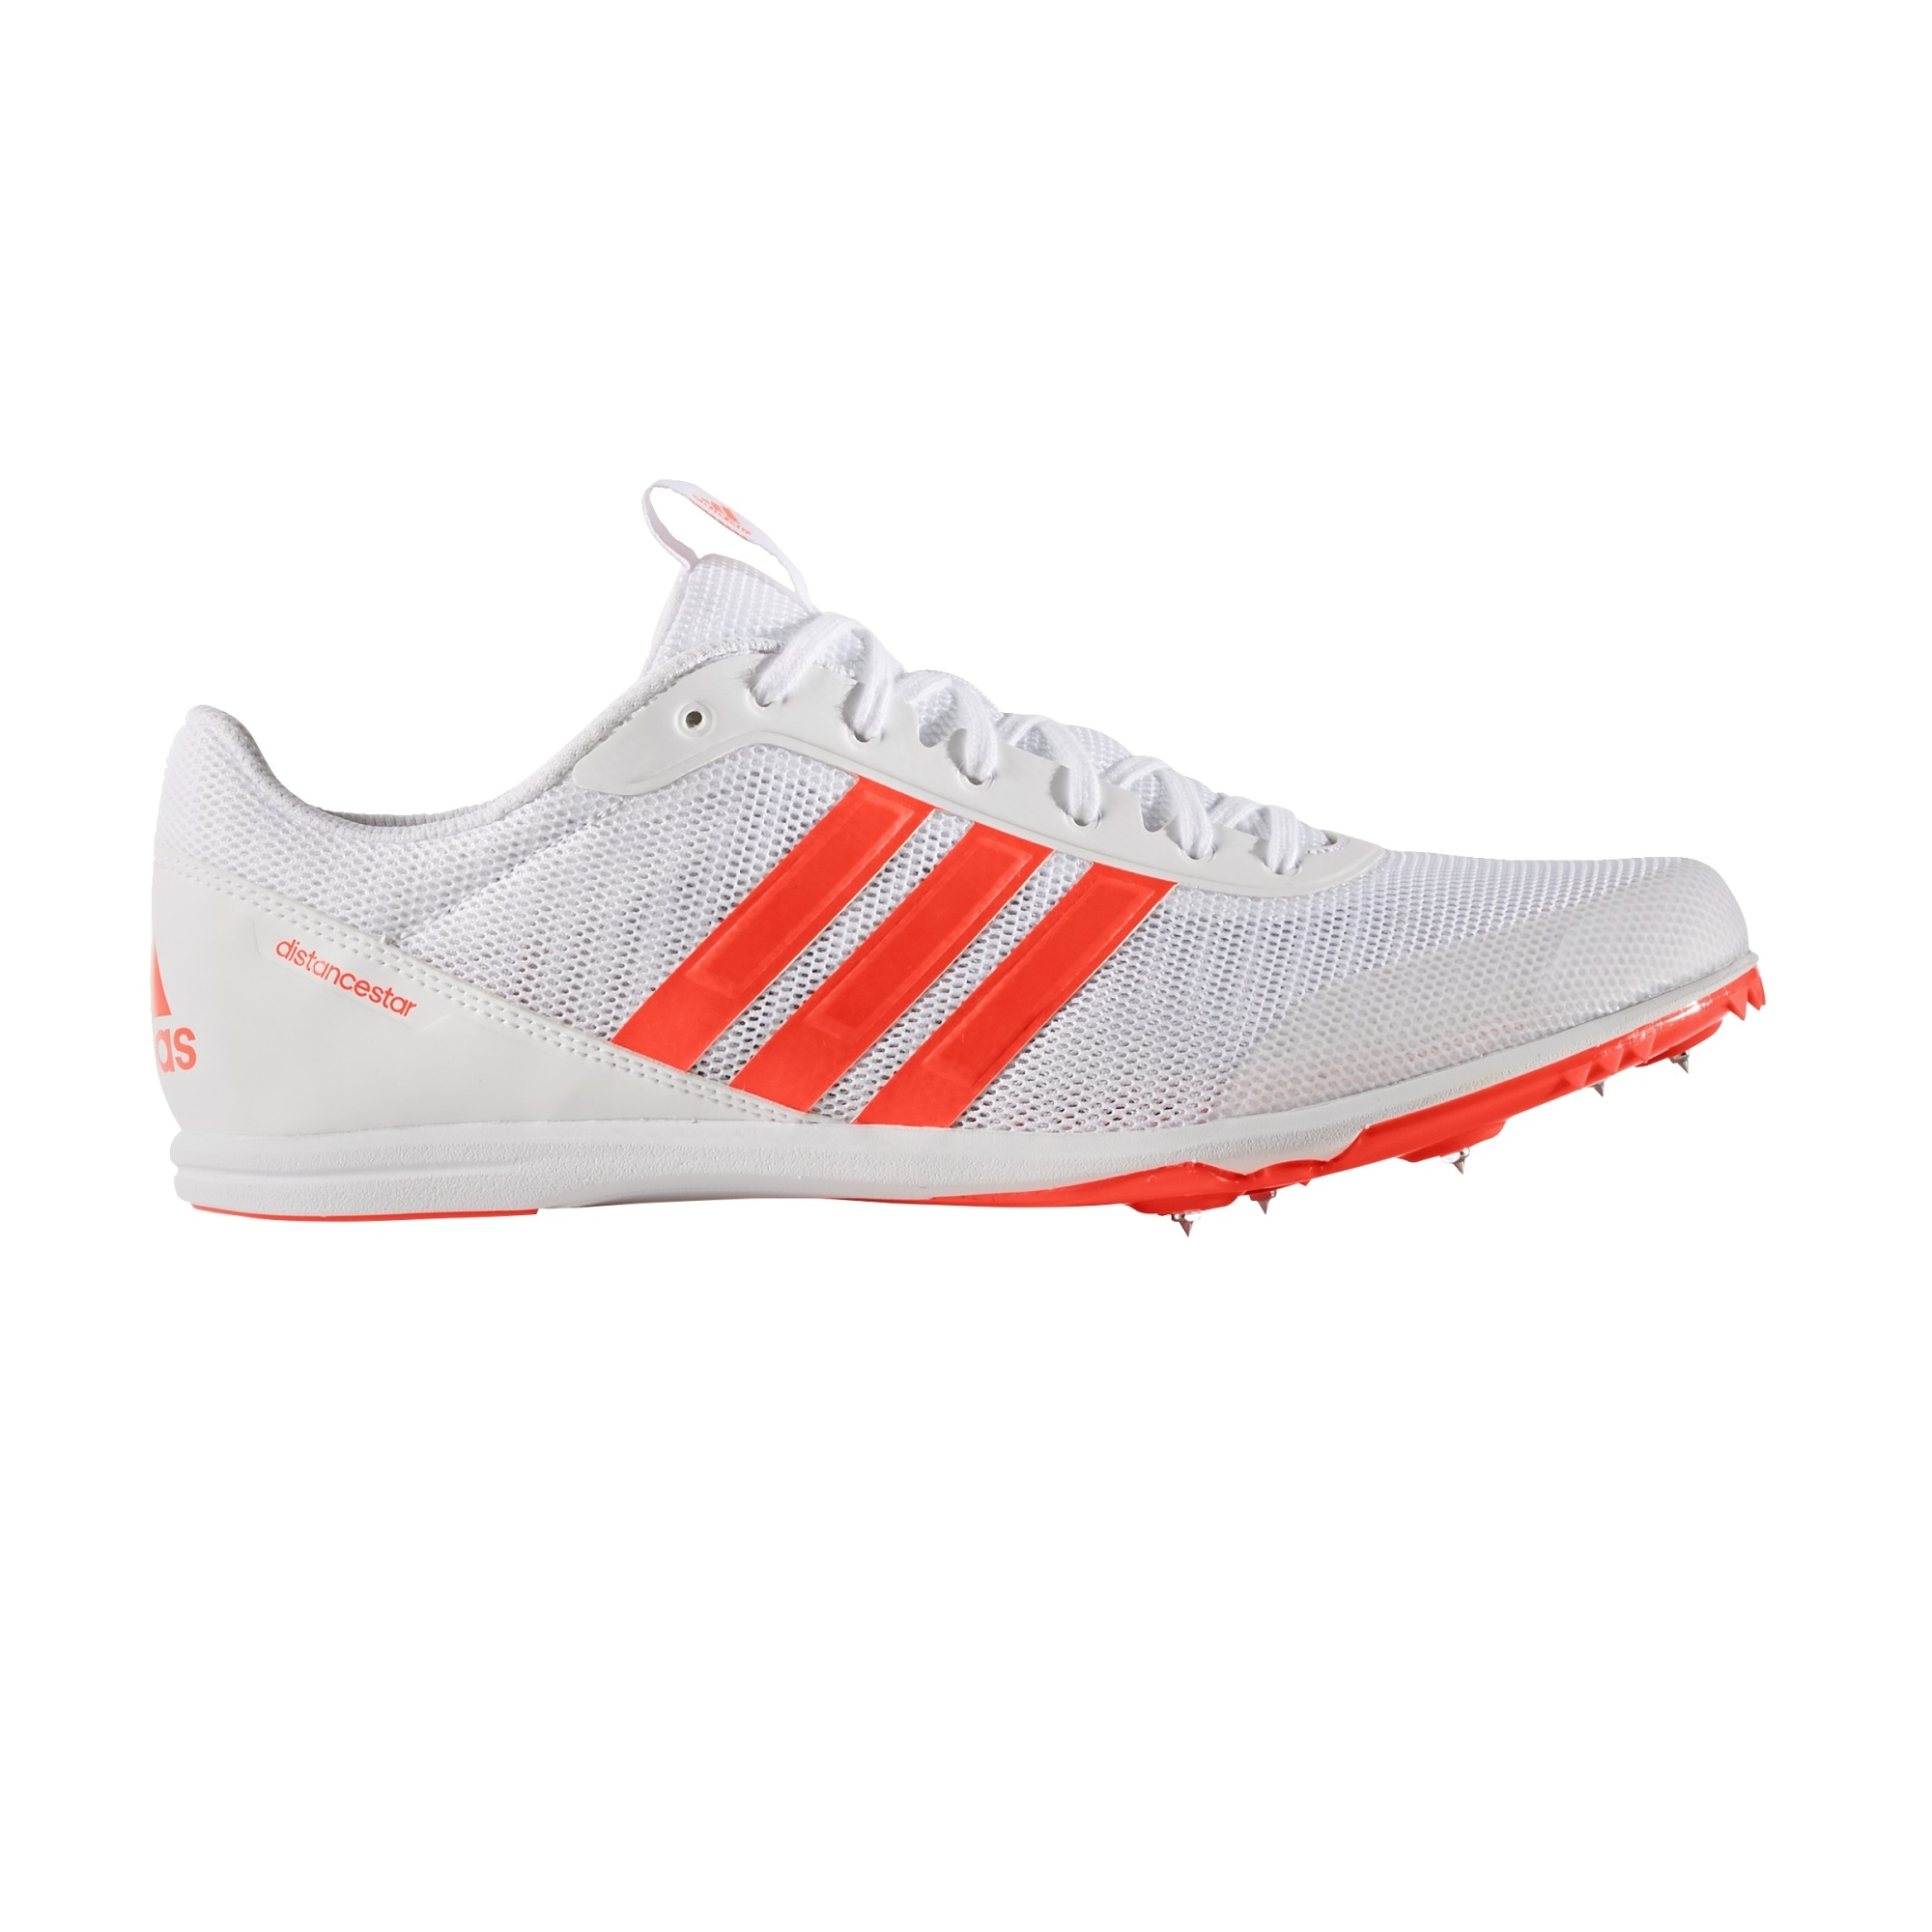 Adidas Distancestar Men's